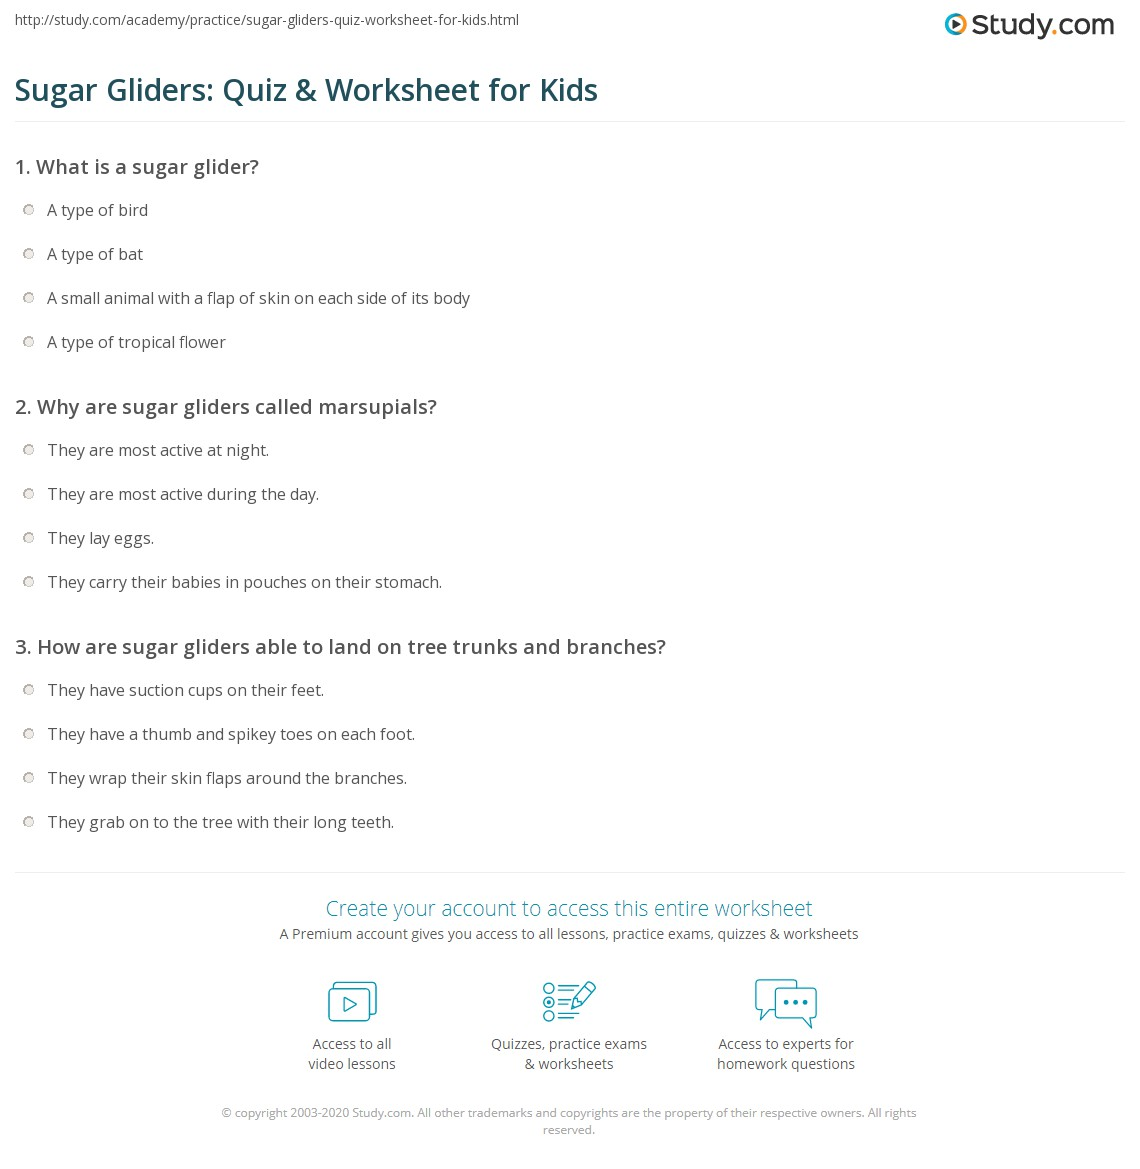 Sugar Gliders: Quiz & Worksheet for Kids | Study.com